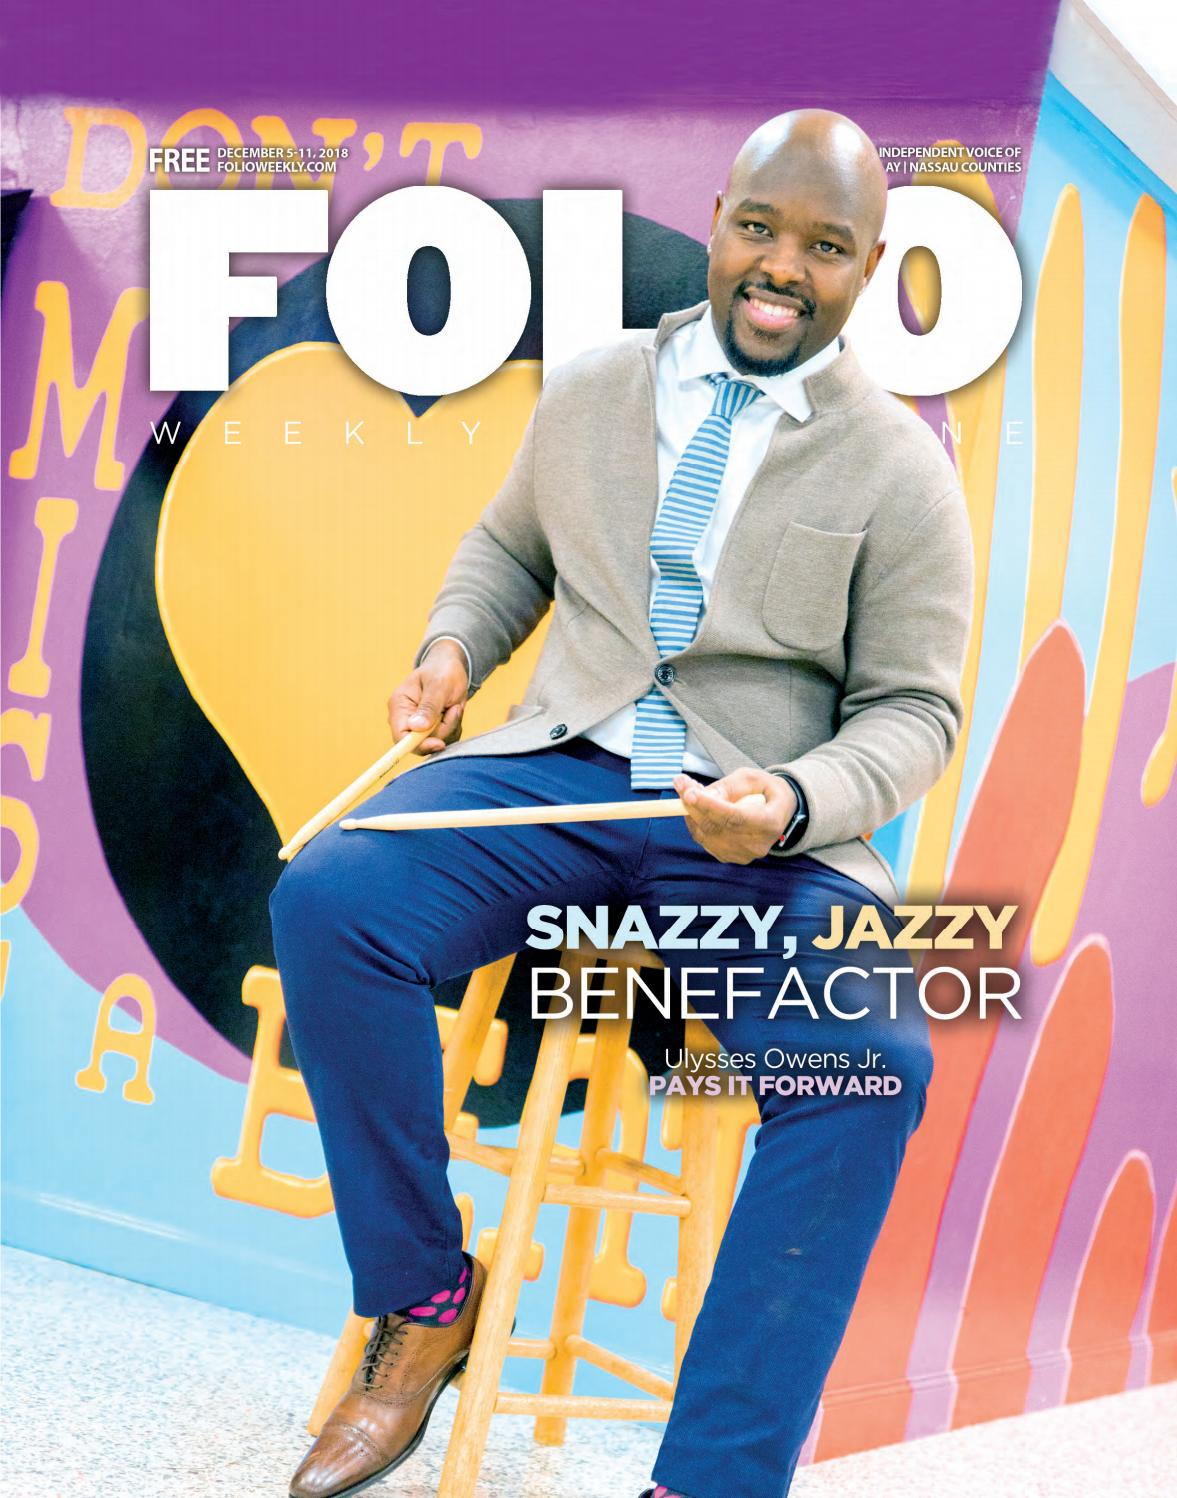 f9d5982de Snazzy, Jazzy Benefactor by Folio Weekly - issuu